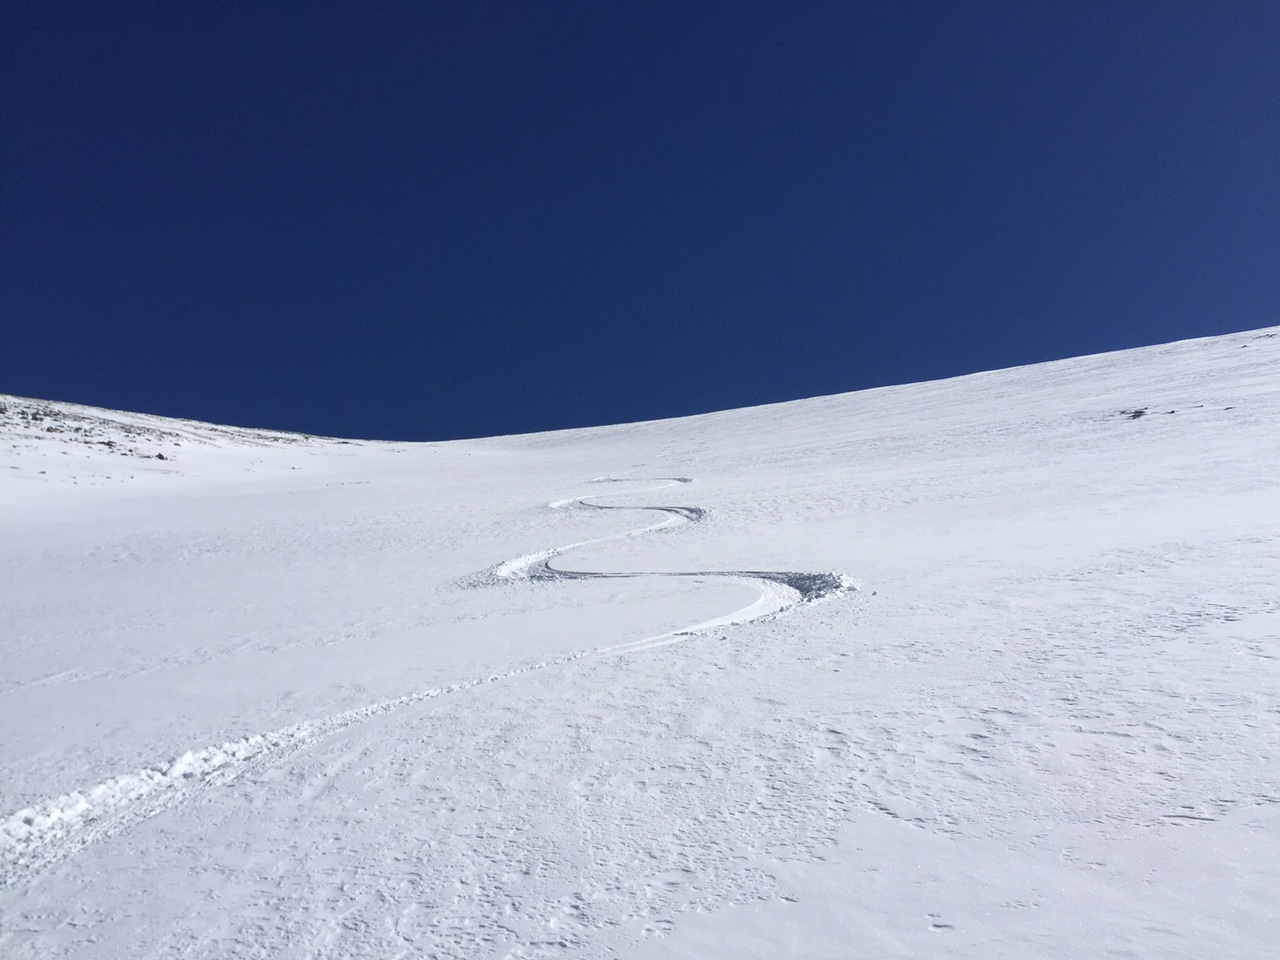 Creamy turns back to timberline in the NW face of the bowl.